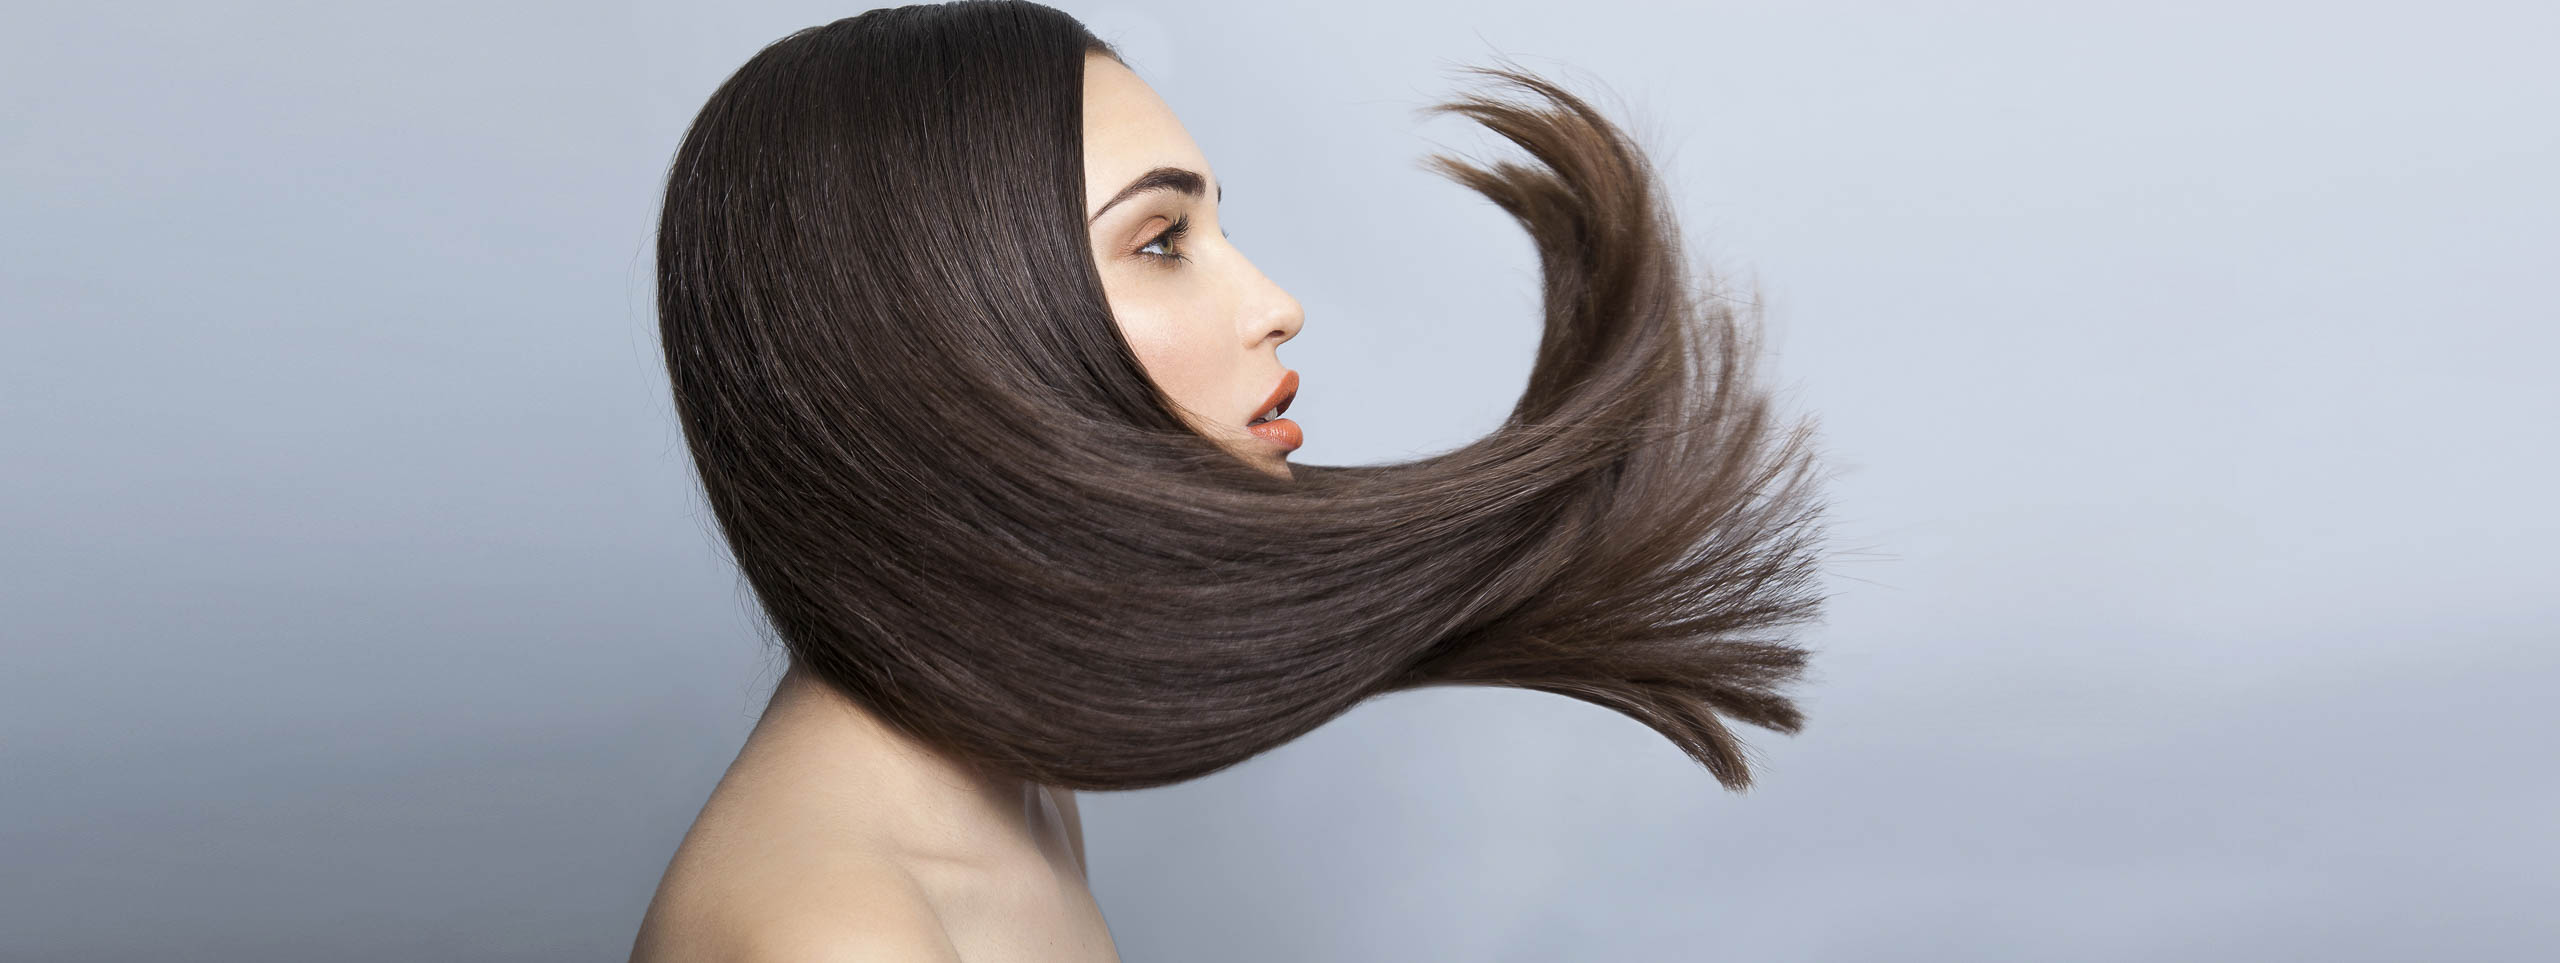 Astonishing Hair Myth Regularly Trimming The Ends Stimulates Hair Growth Natural Hairstyles Runnerswayorg